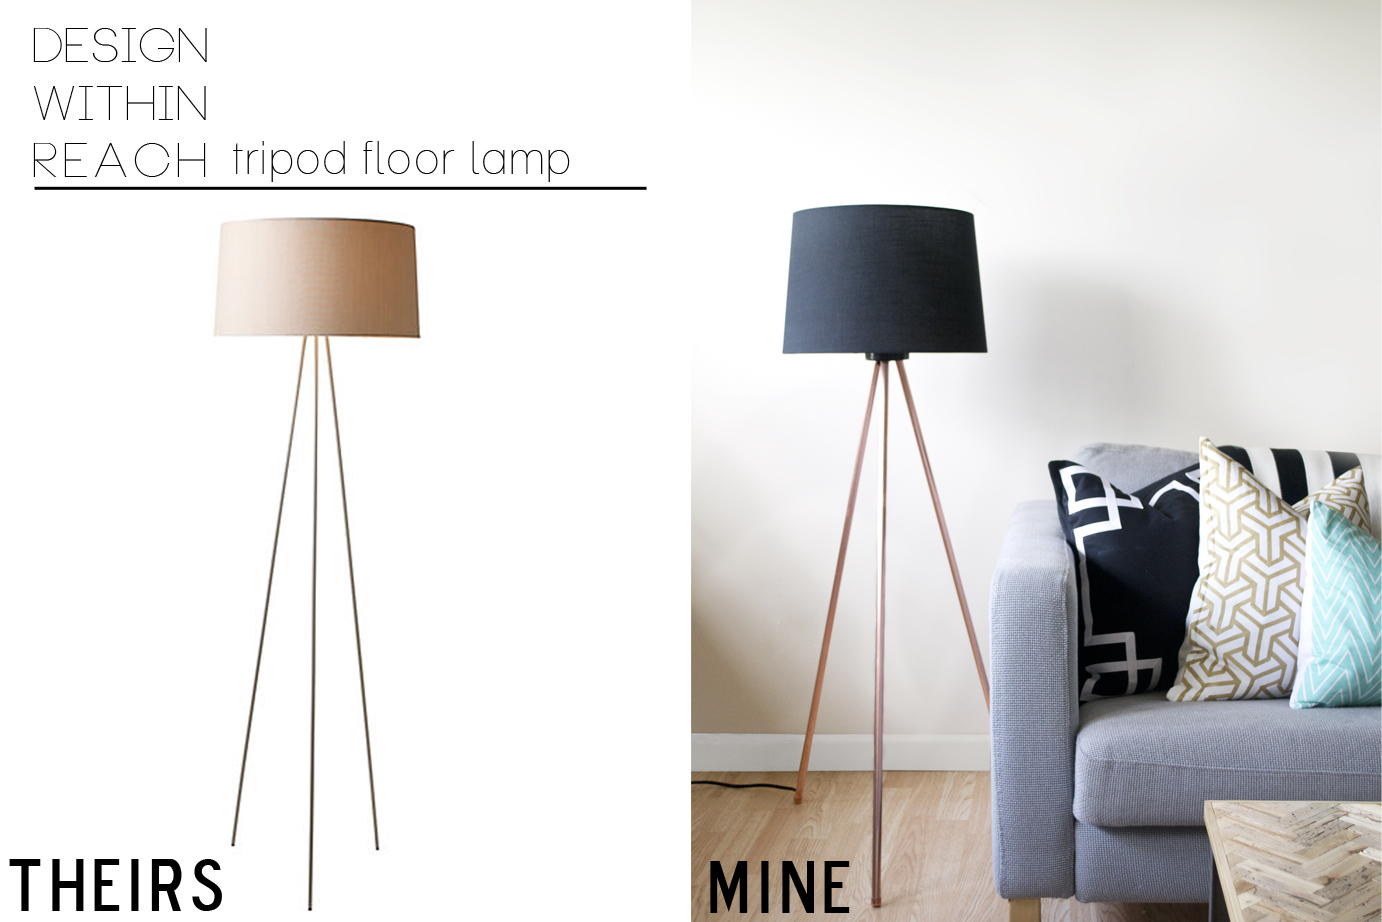 Knocktoberfest | Tripod Floor Lamp - Dorsey Designs for Homemade Floor Lamps  55jwn